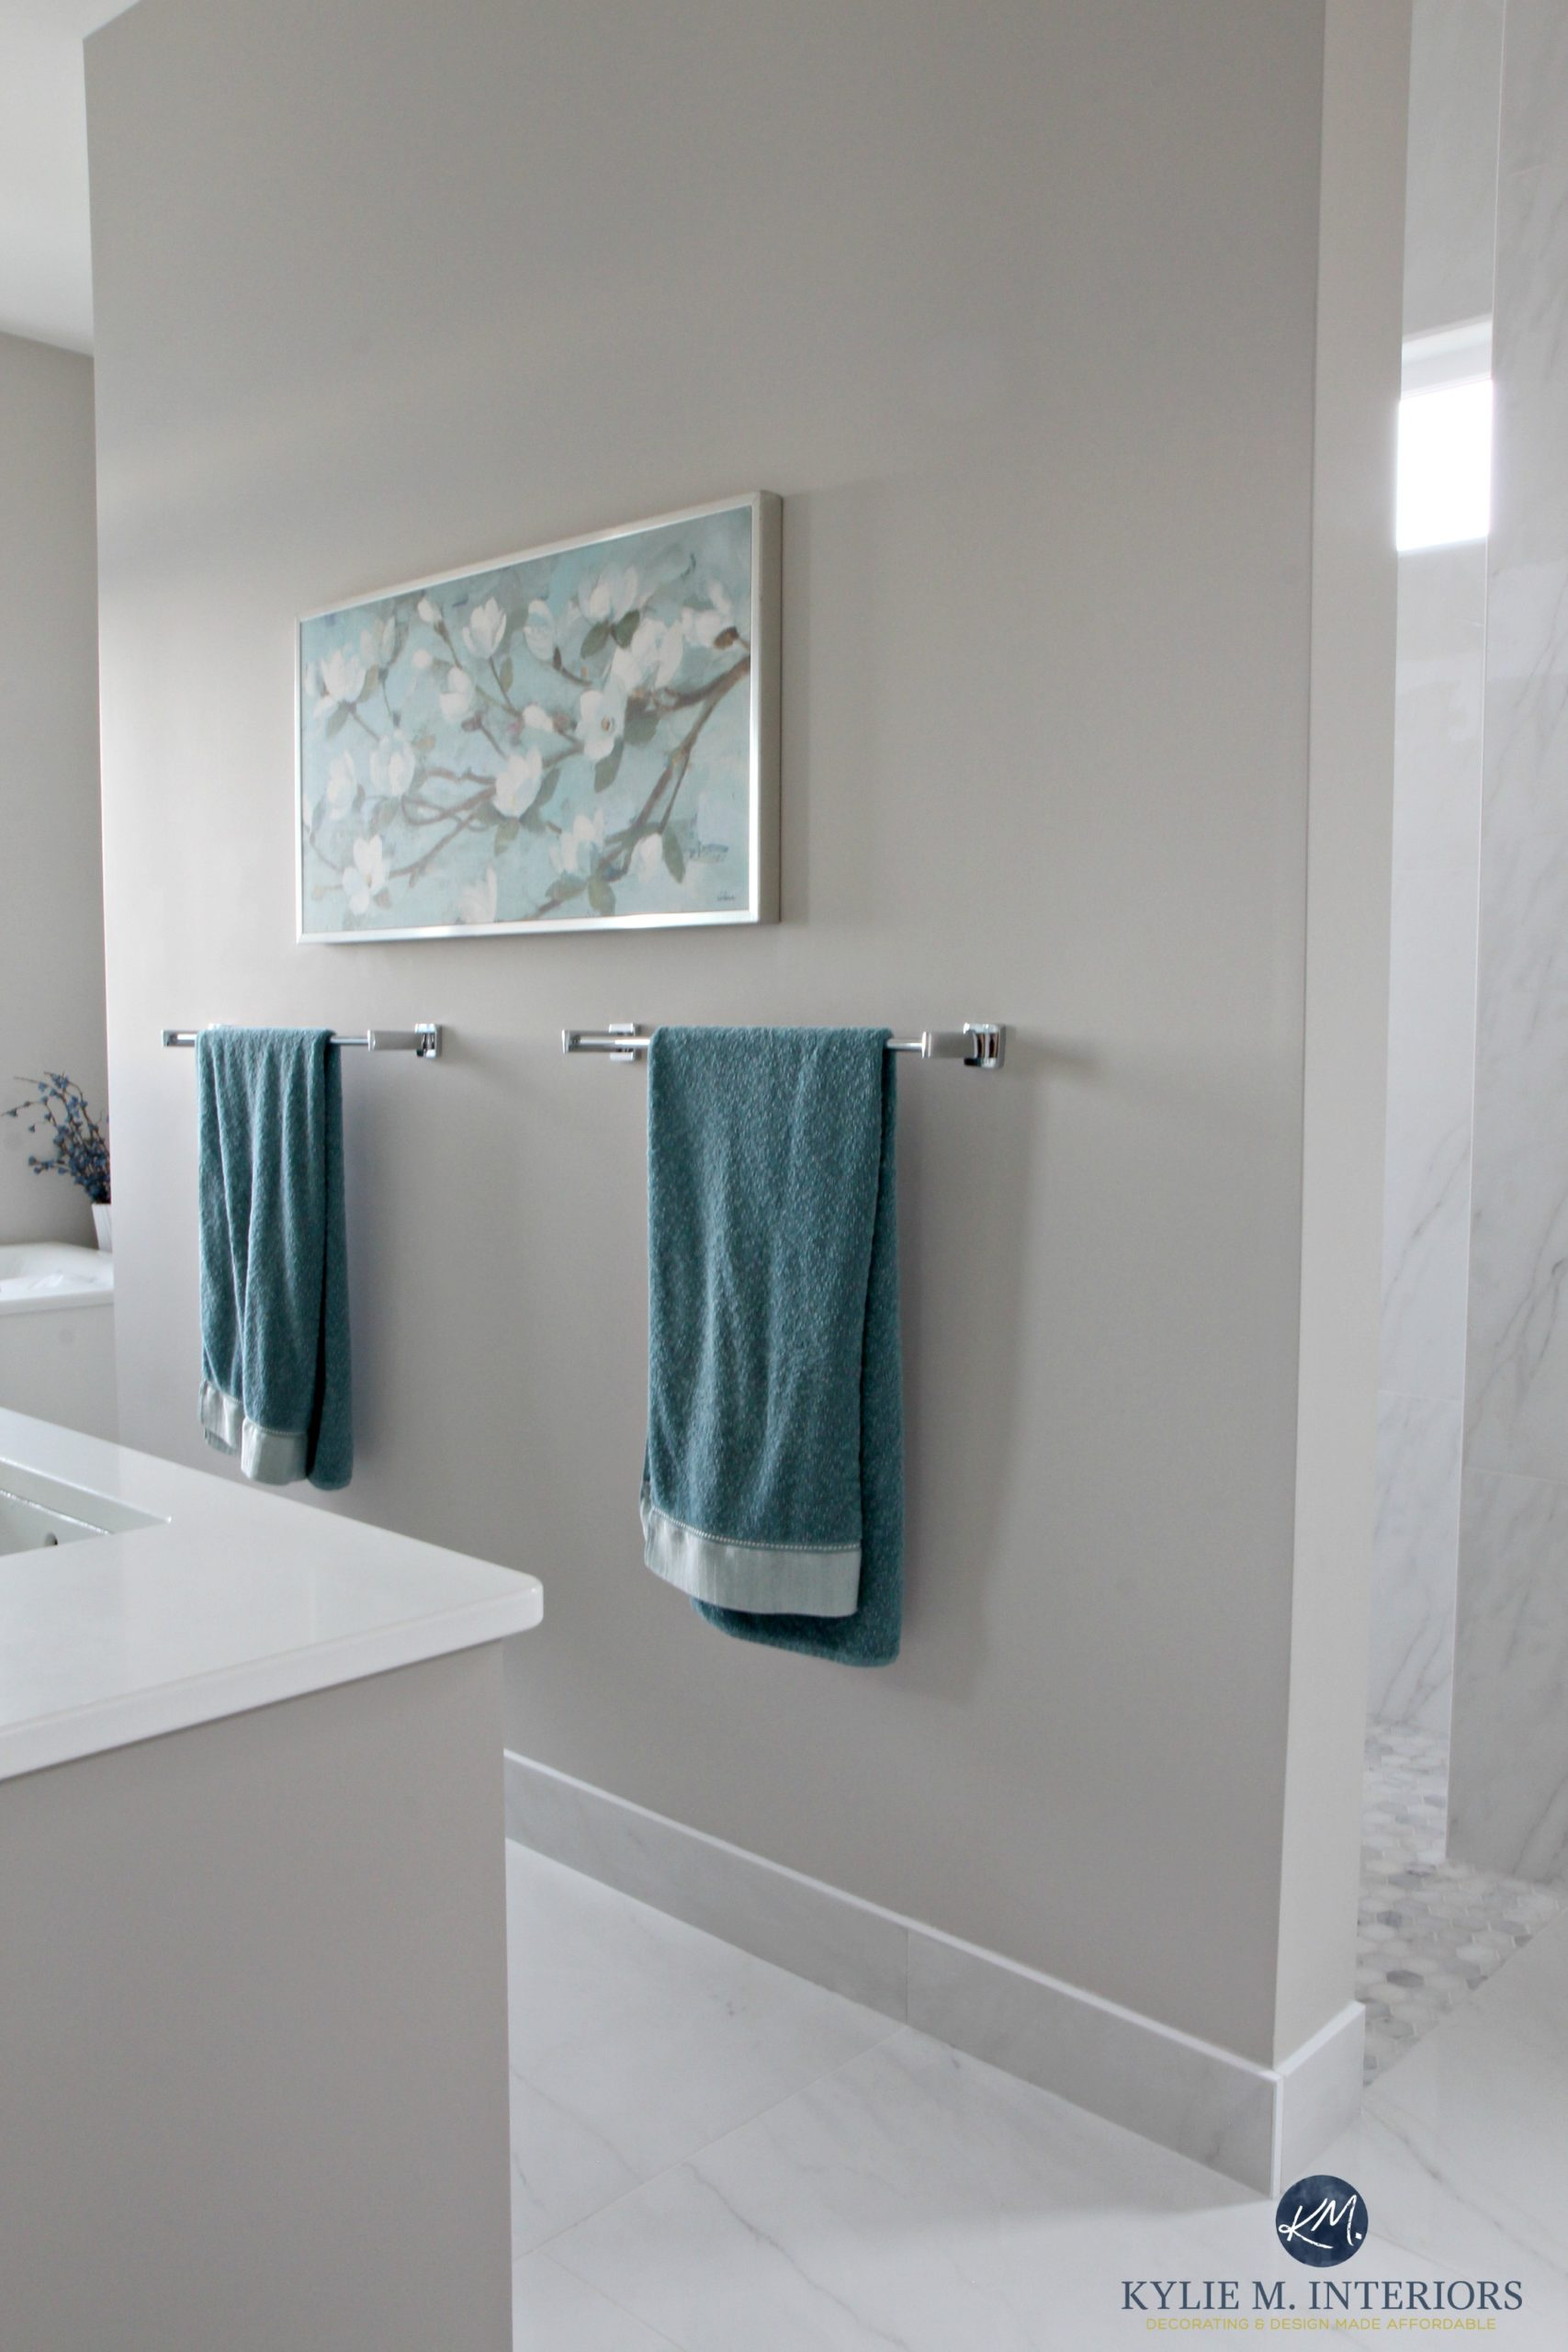 Bathroom With Marble Floor And Shower With Benjamin Moore Balboa Mist, Warm  Gray Or Greige Paint Colour. Kylie M Interiors E Decor Services And  Consulting